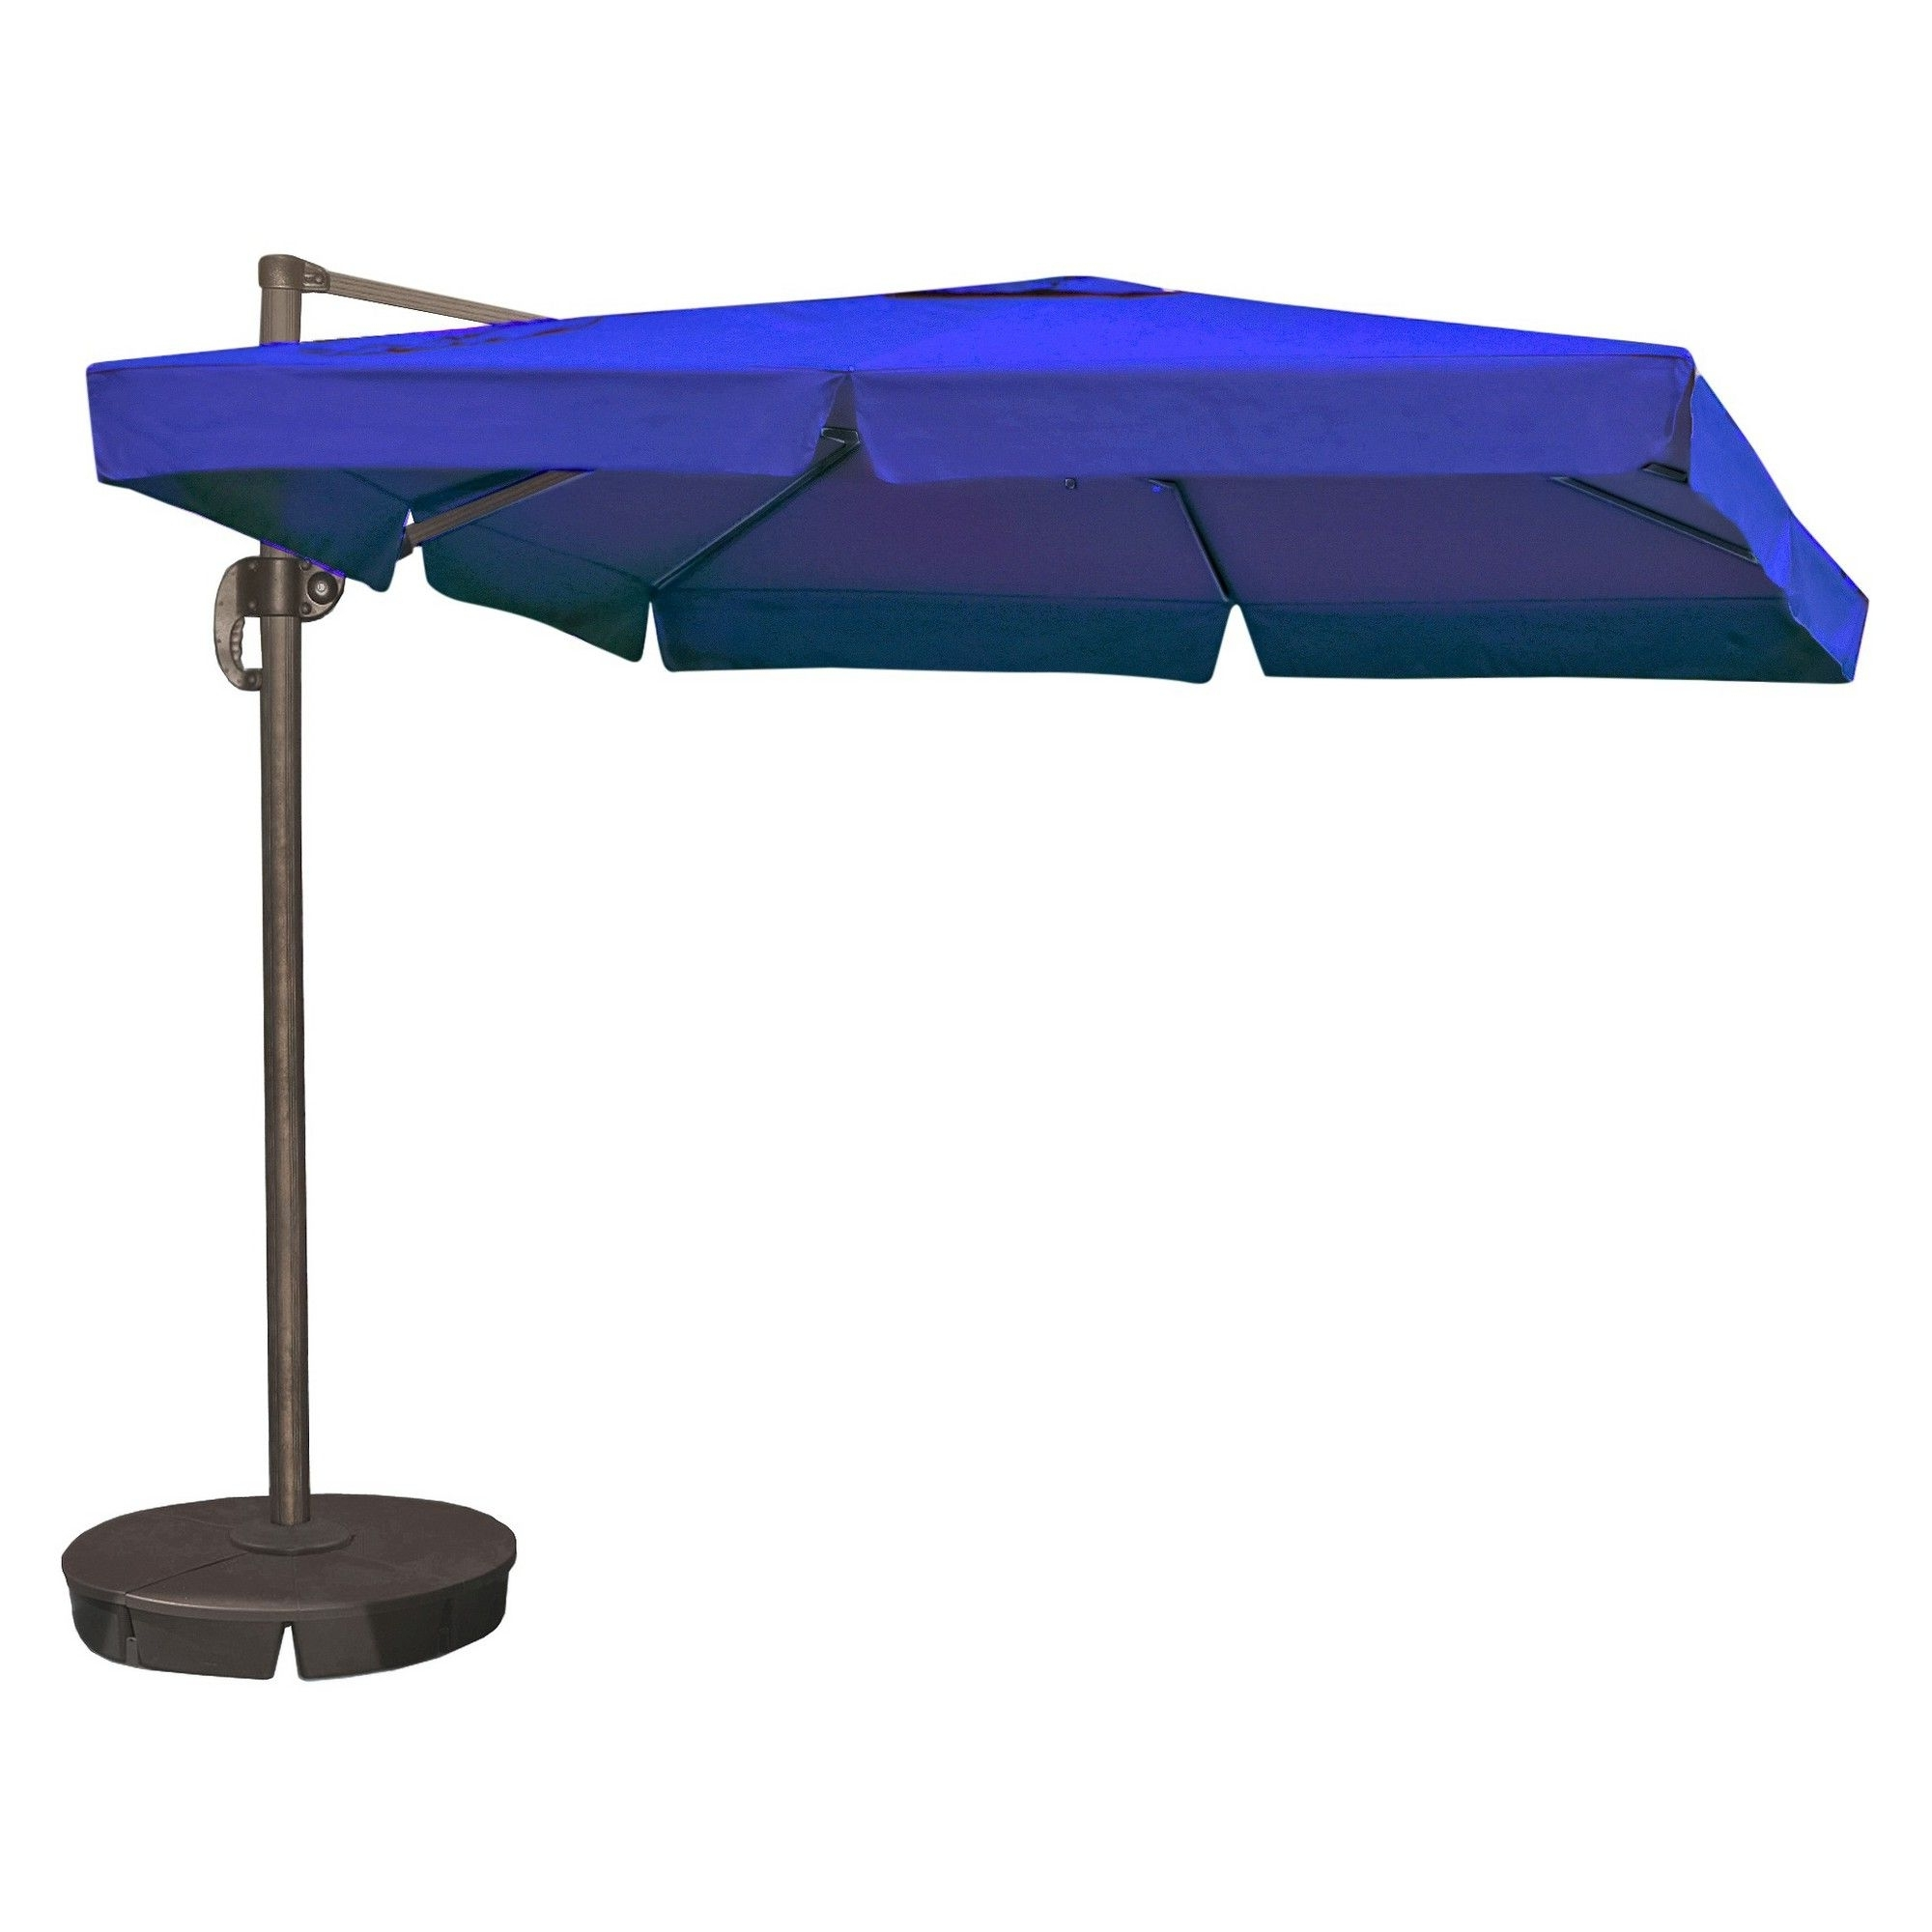 Best And Newest Patio Umbrellas With Valance Pertaining To Island Umbrella Santorini Ii 10' Square Cantilever Umbrella With (View 6 of 20)